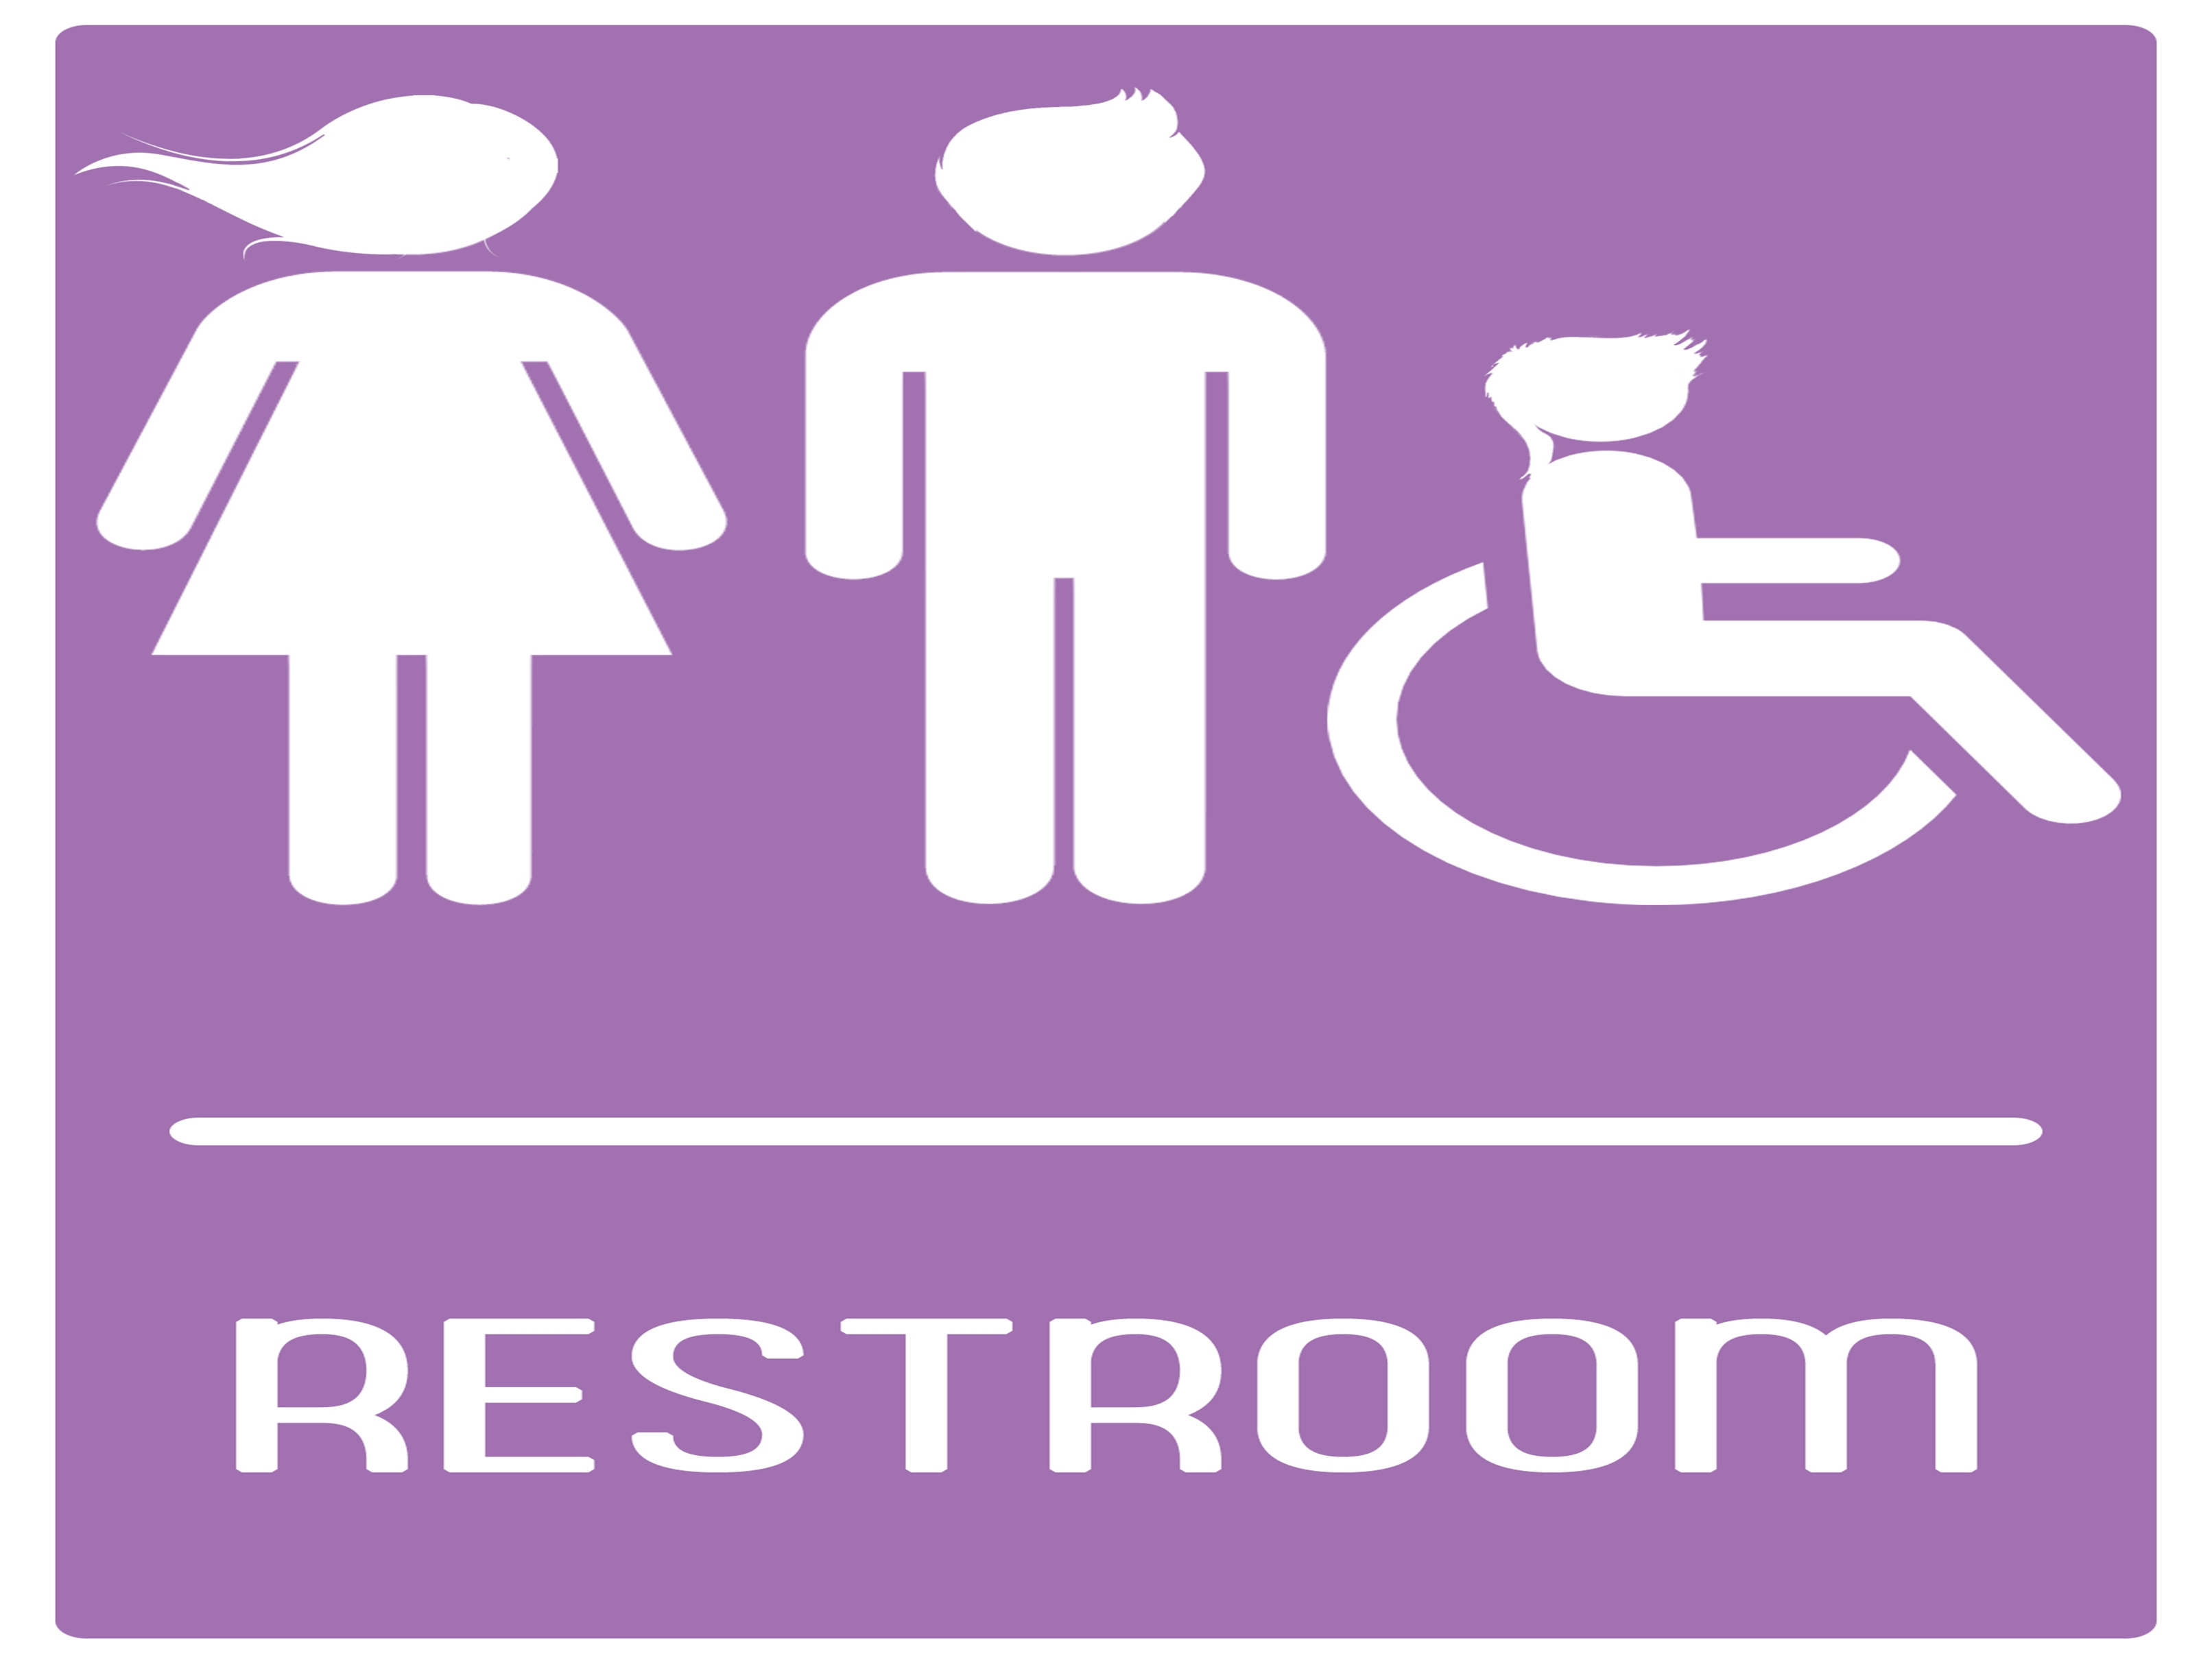 restroom-new1 copy